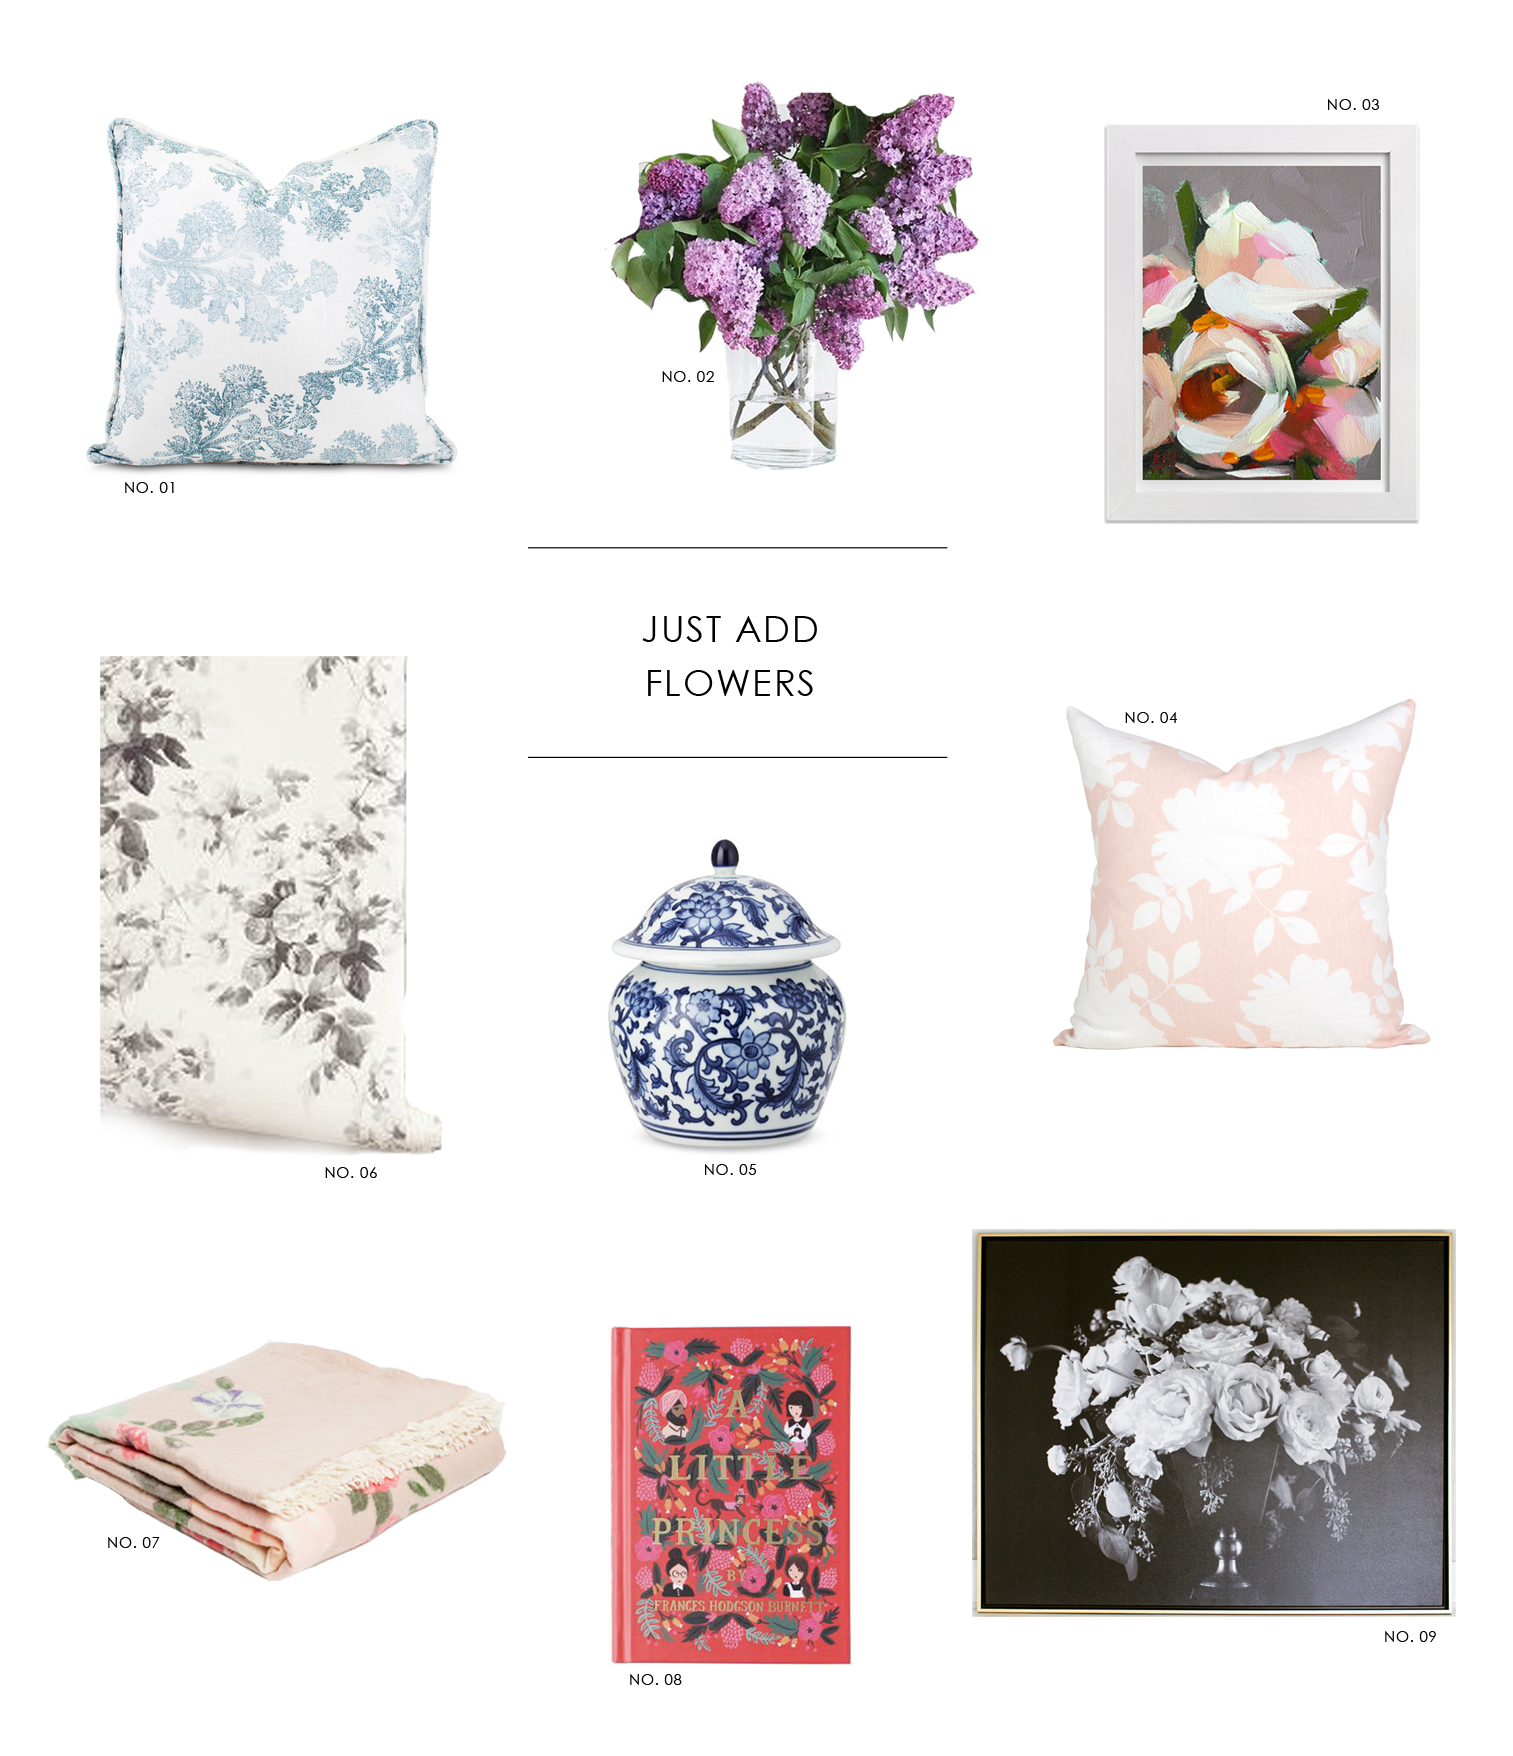 Just Add Flowers || Studio McGee's Top Picks for bringing floral into your decor